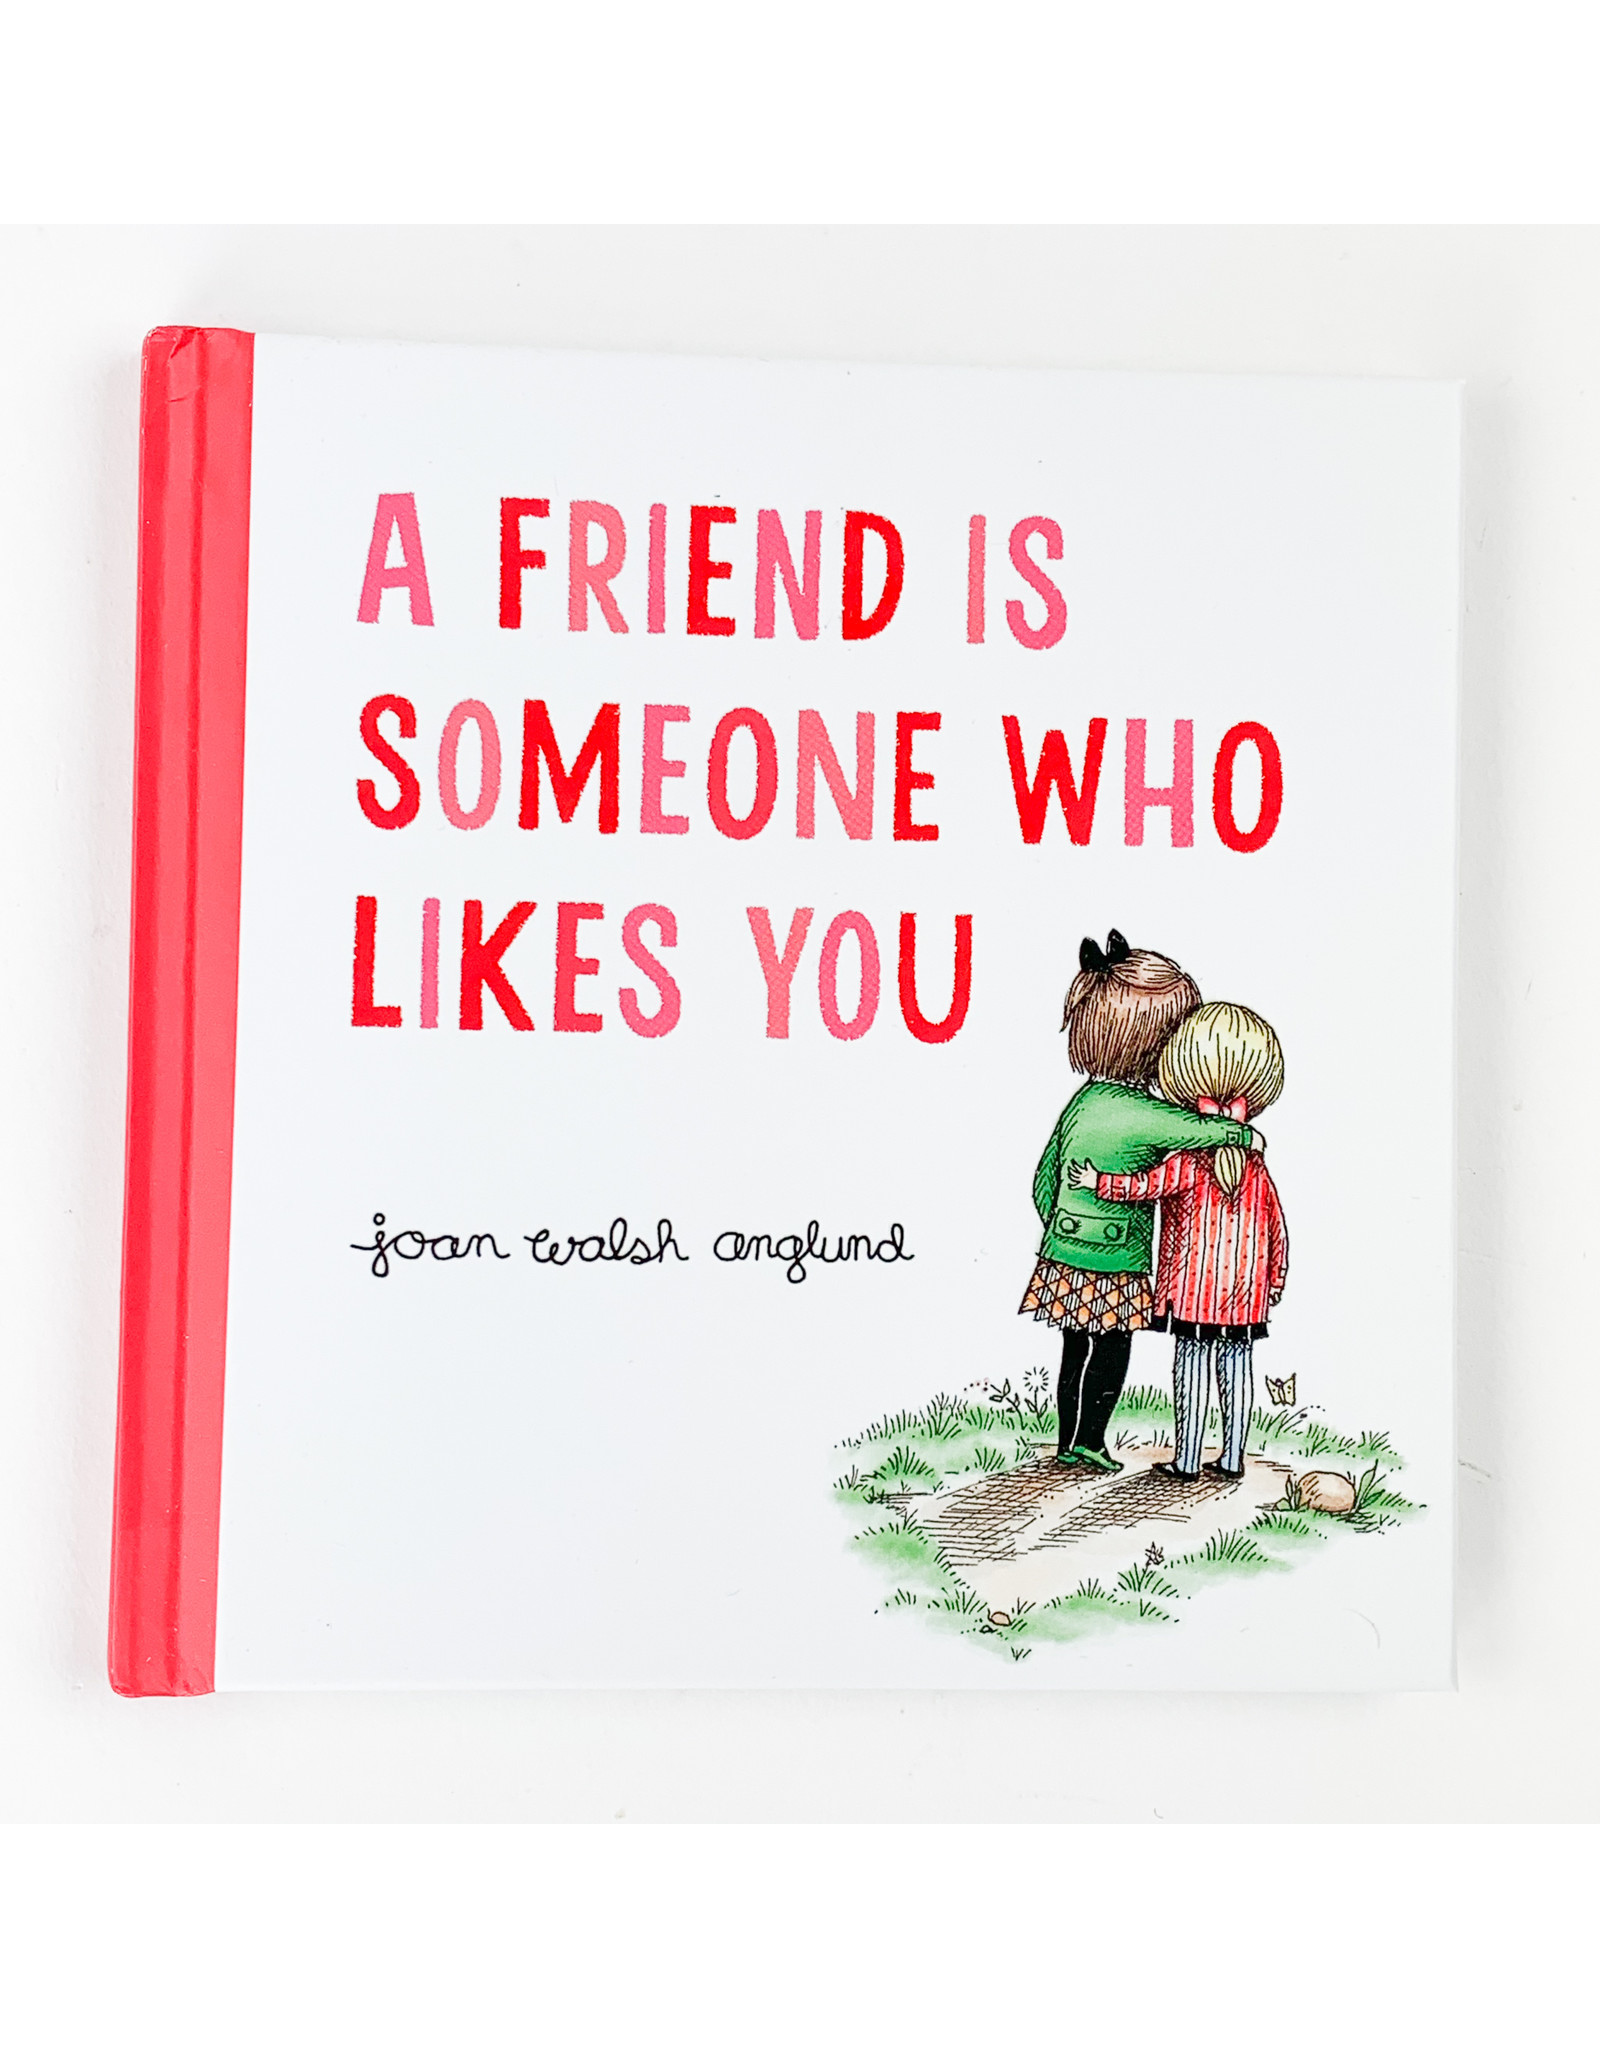 Houghton Mifflin A Friend is Someone Who Likes You